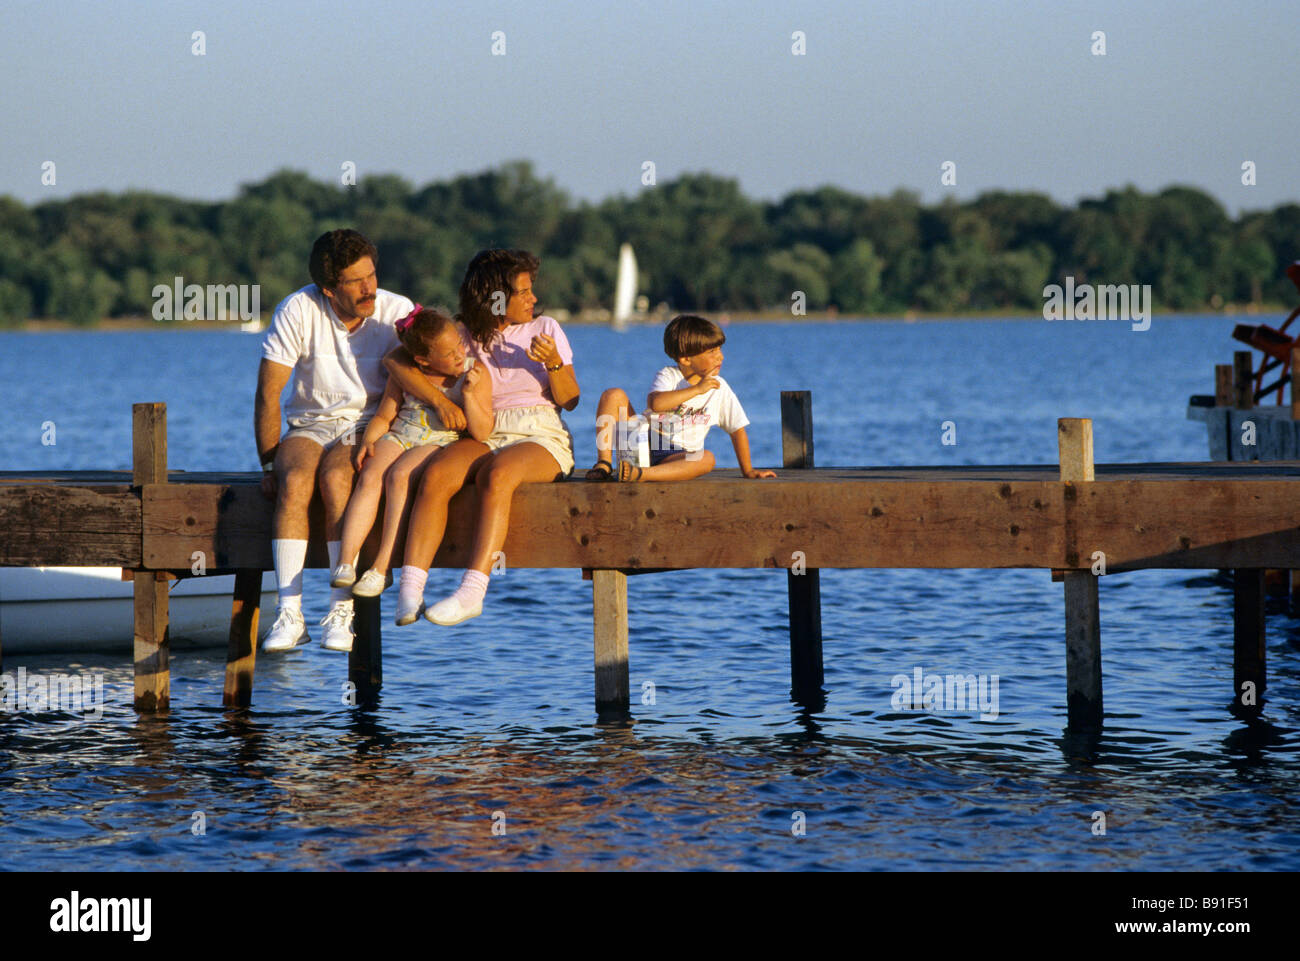 FAMILY SITS ON DOCK ON LAKE HARRIET, A POPULAR INNER-CITY LAKE AND PARK AREA IN MINNEAPOLIS, MINNESOTA.  SUMMER. - Stock Image